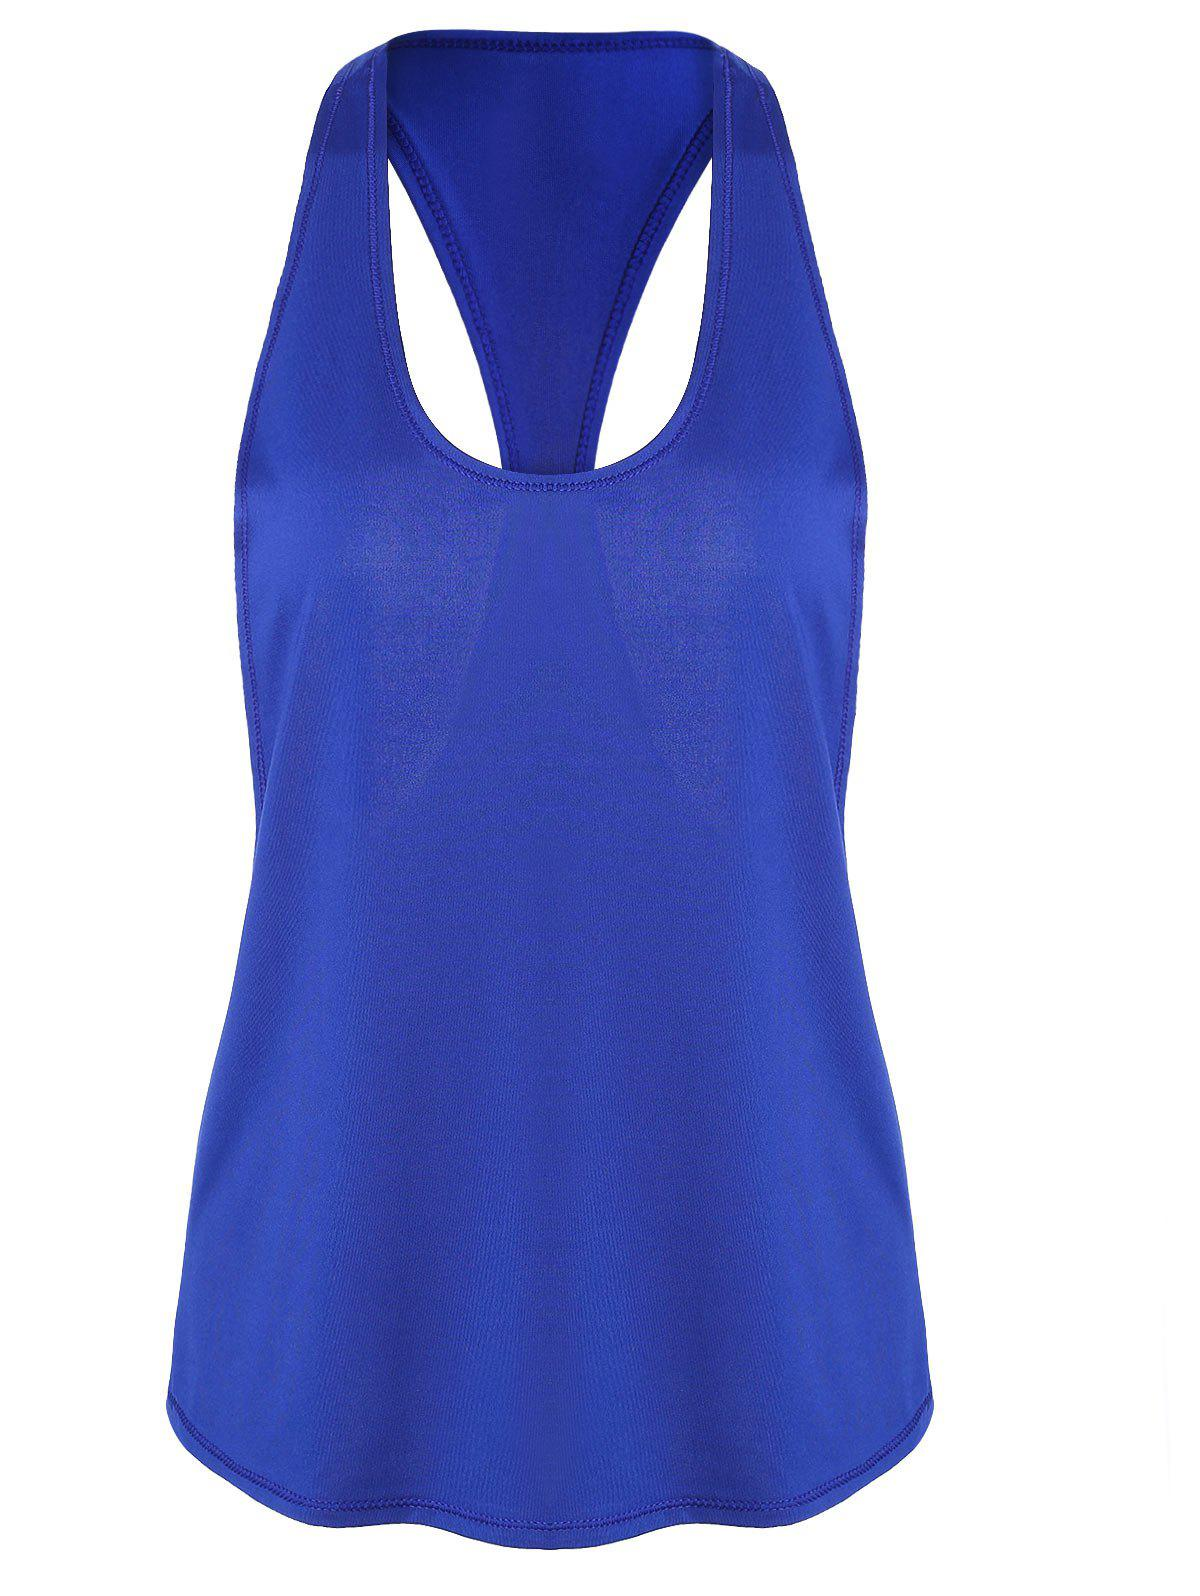 Online Racerback Workout Athletic Running Tank Top